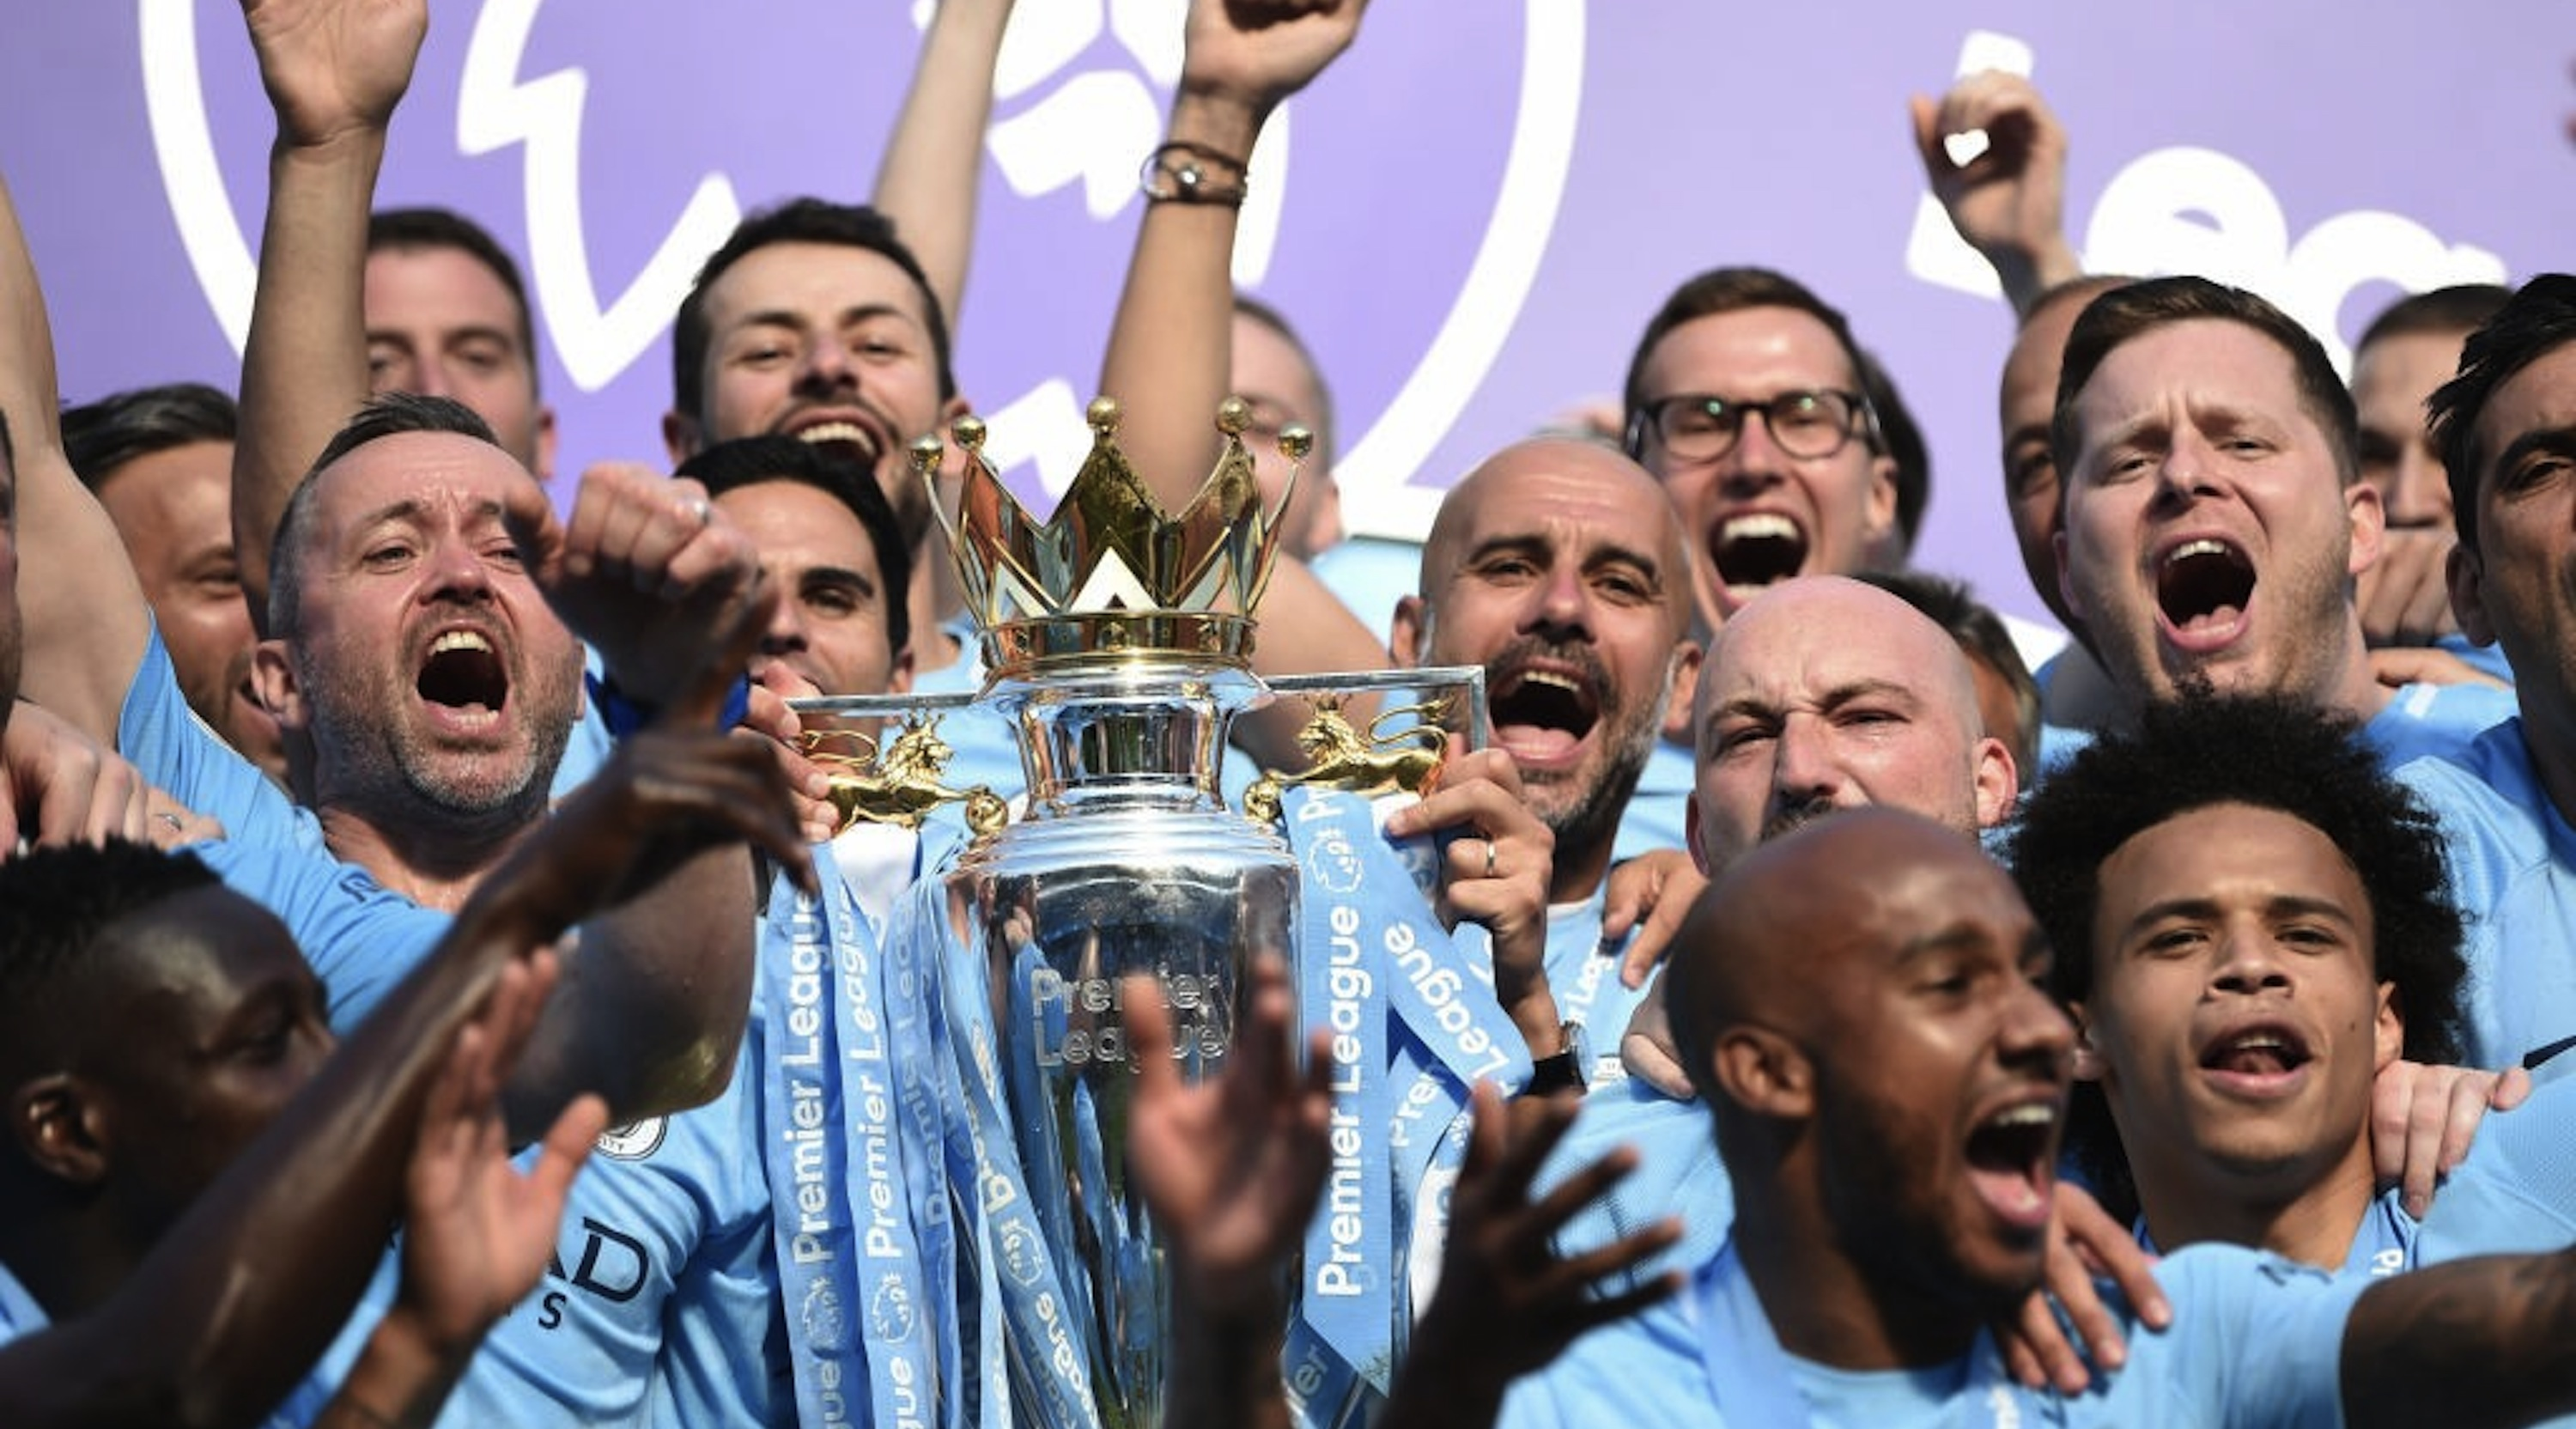 Josep Guardiola, Manager of Manchester City lifts The Premier League Trophy after the Premier League match between Manchester City and Huddersfield Town at Etihad Stadium on May 6, 2018 in Manchester, England. (Photo by Michael Regan/Getty Images)